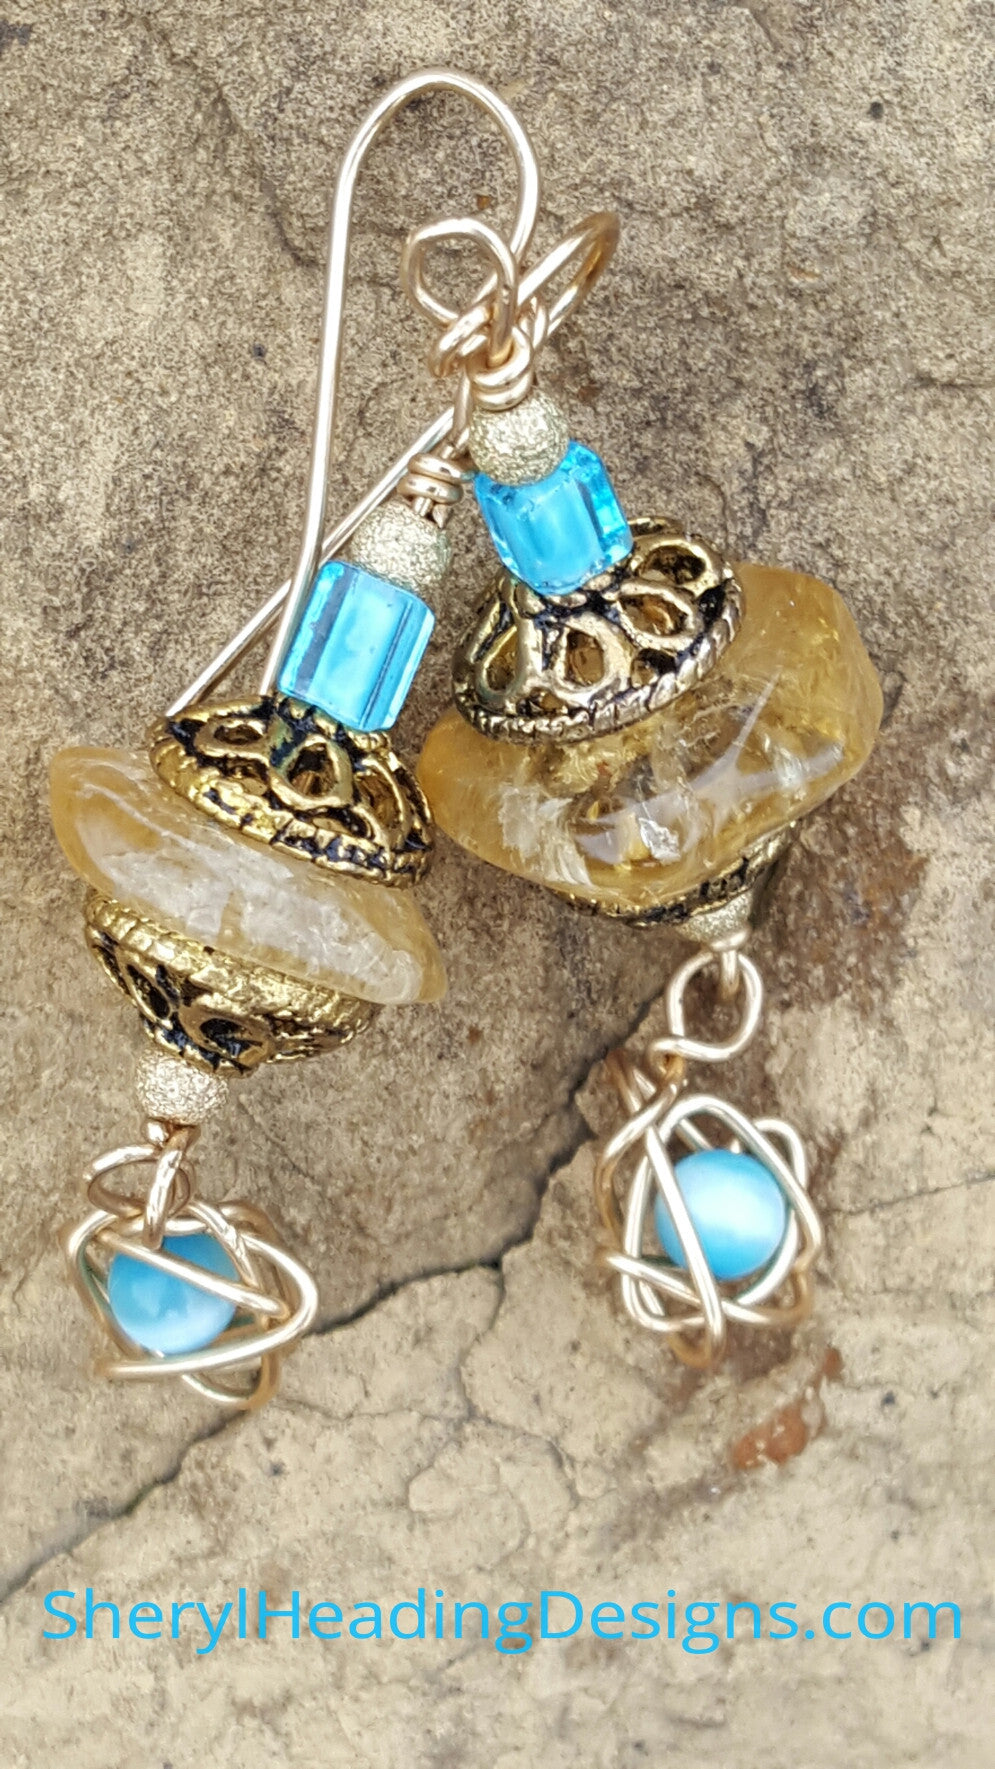 Vintage Blue with a Scribble Earrings - Sheryl Heading Designs